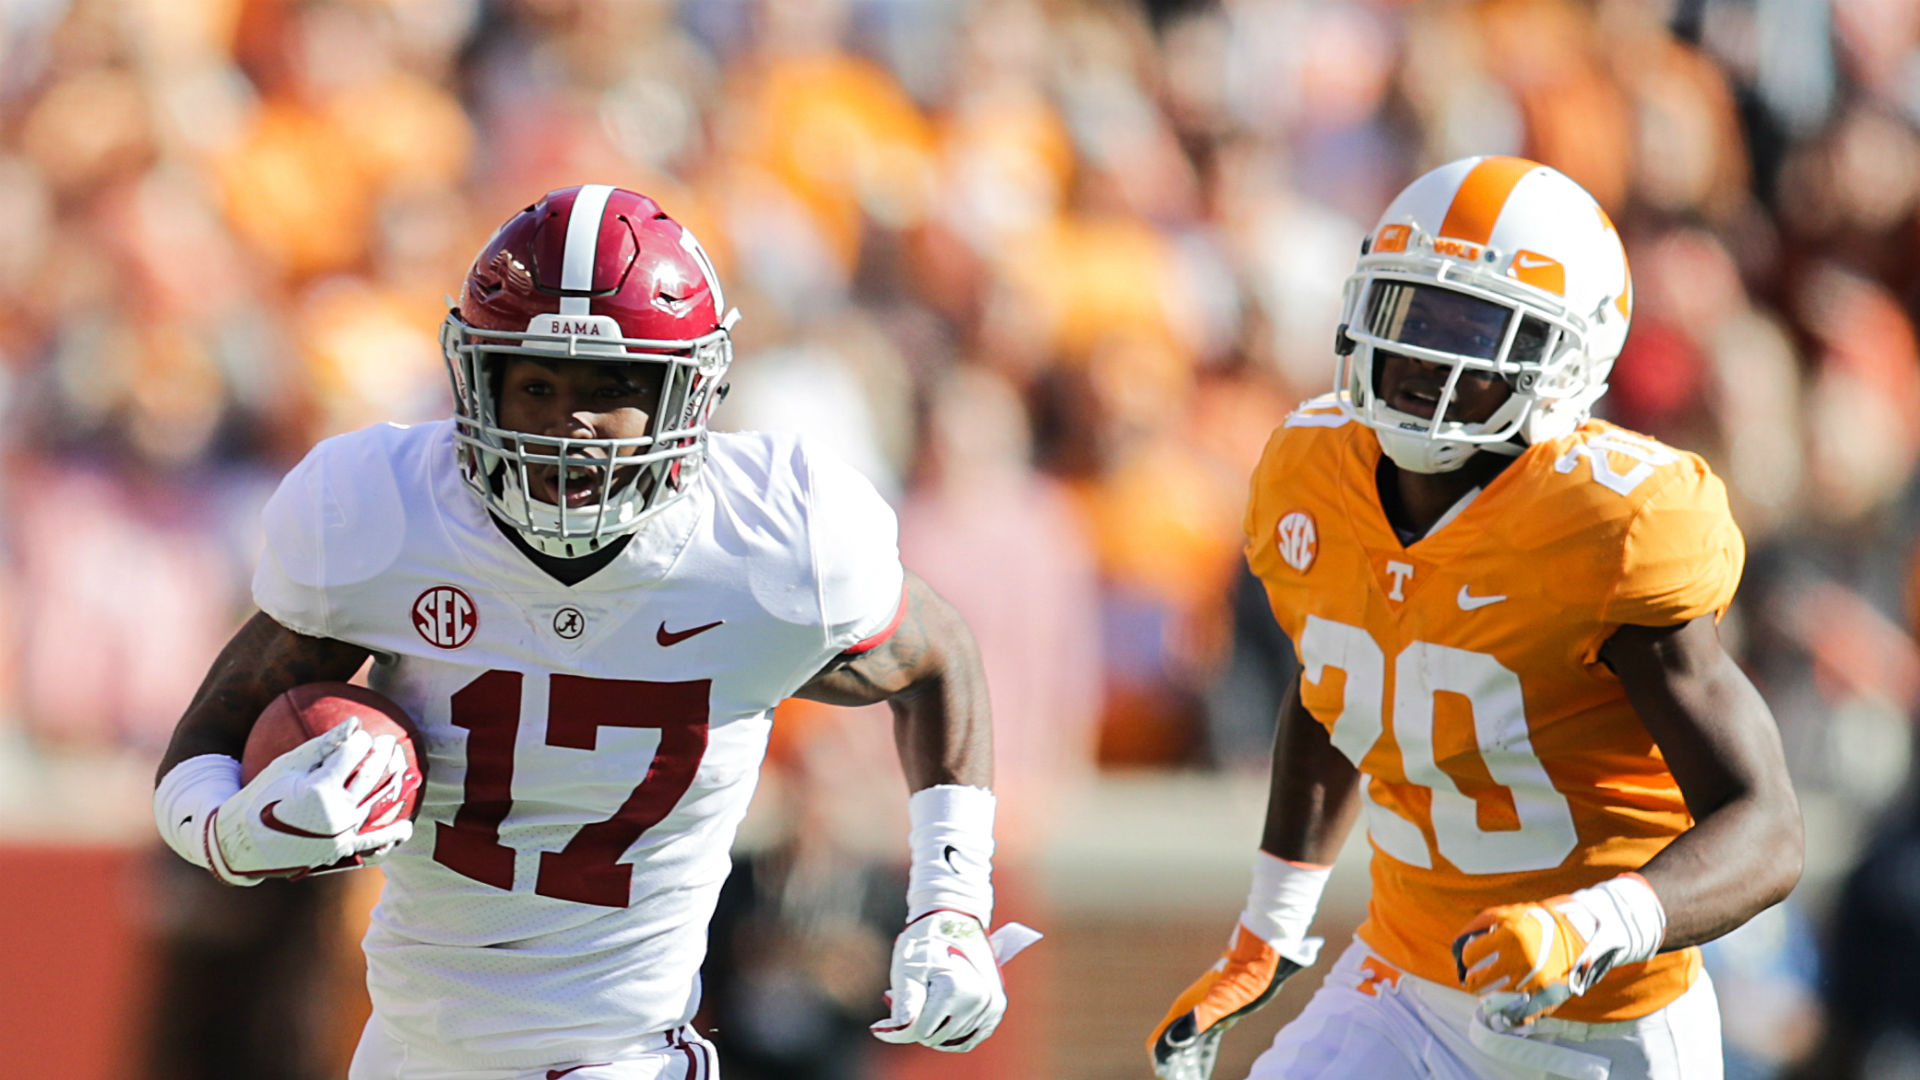 NFL draft prospects 2021: Big board of top 50 players overall & updated position rankings 4